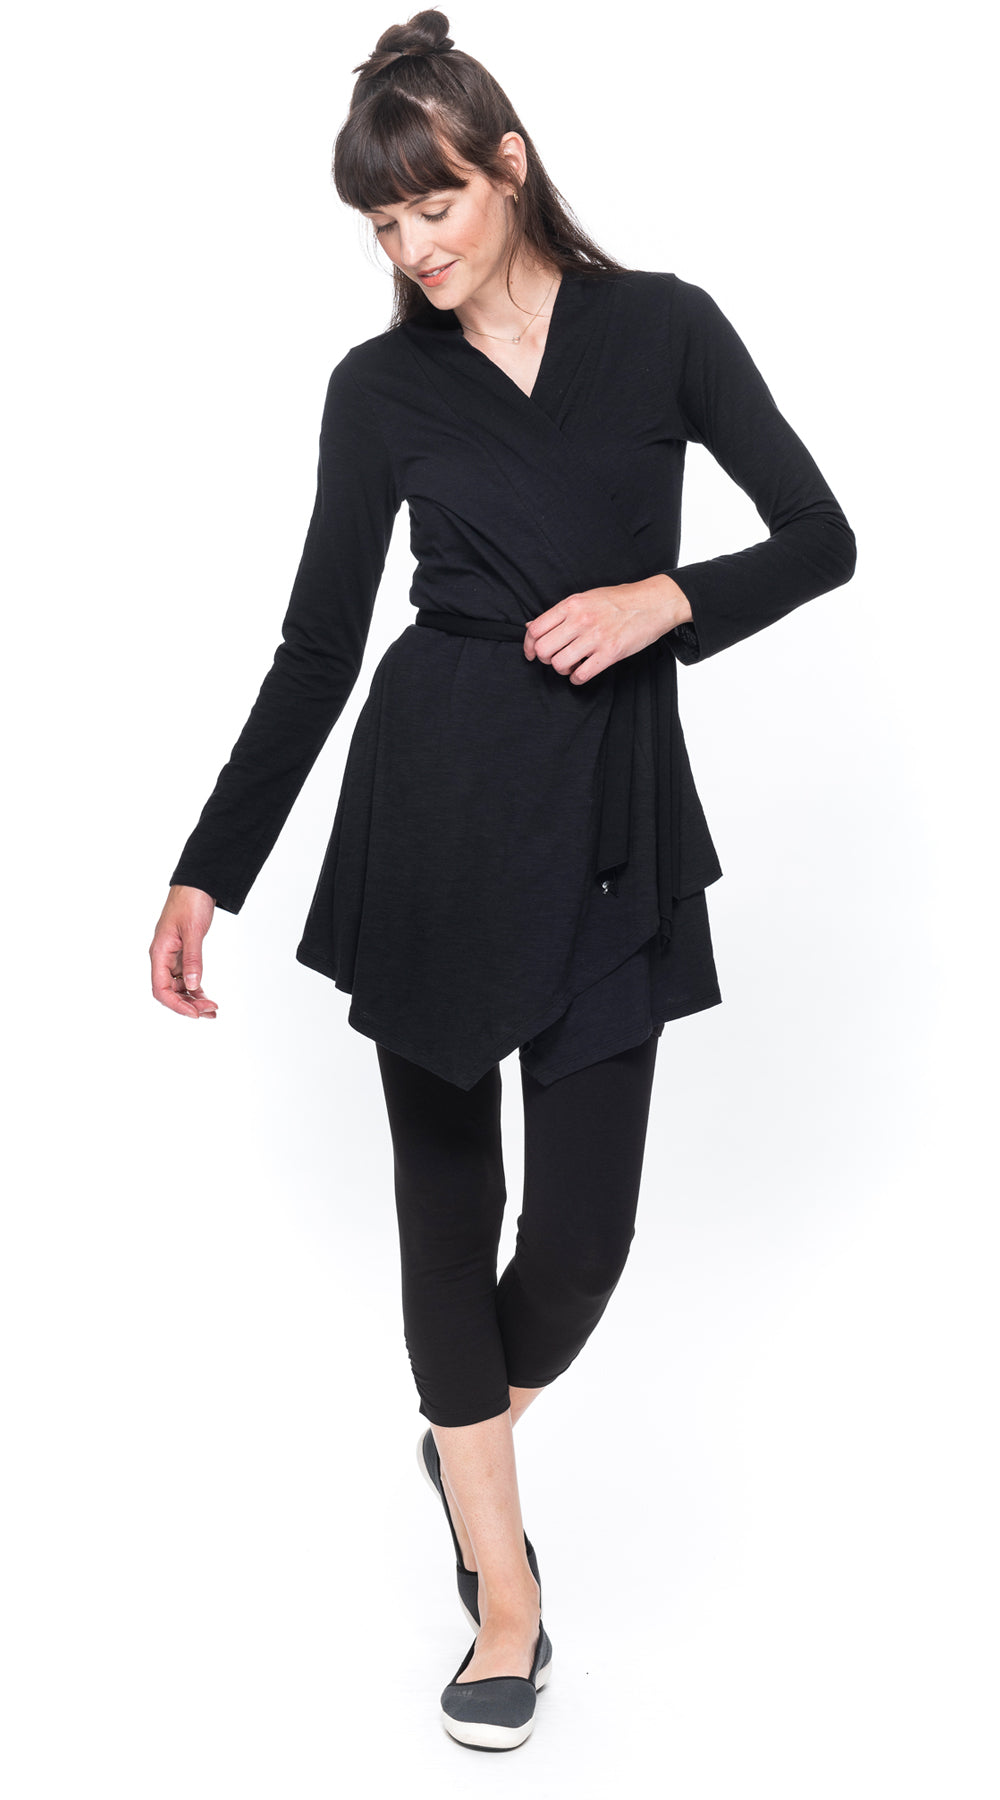 Iris Cardigan - organic cotton - black